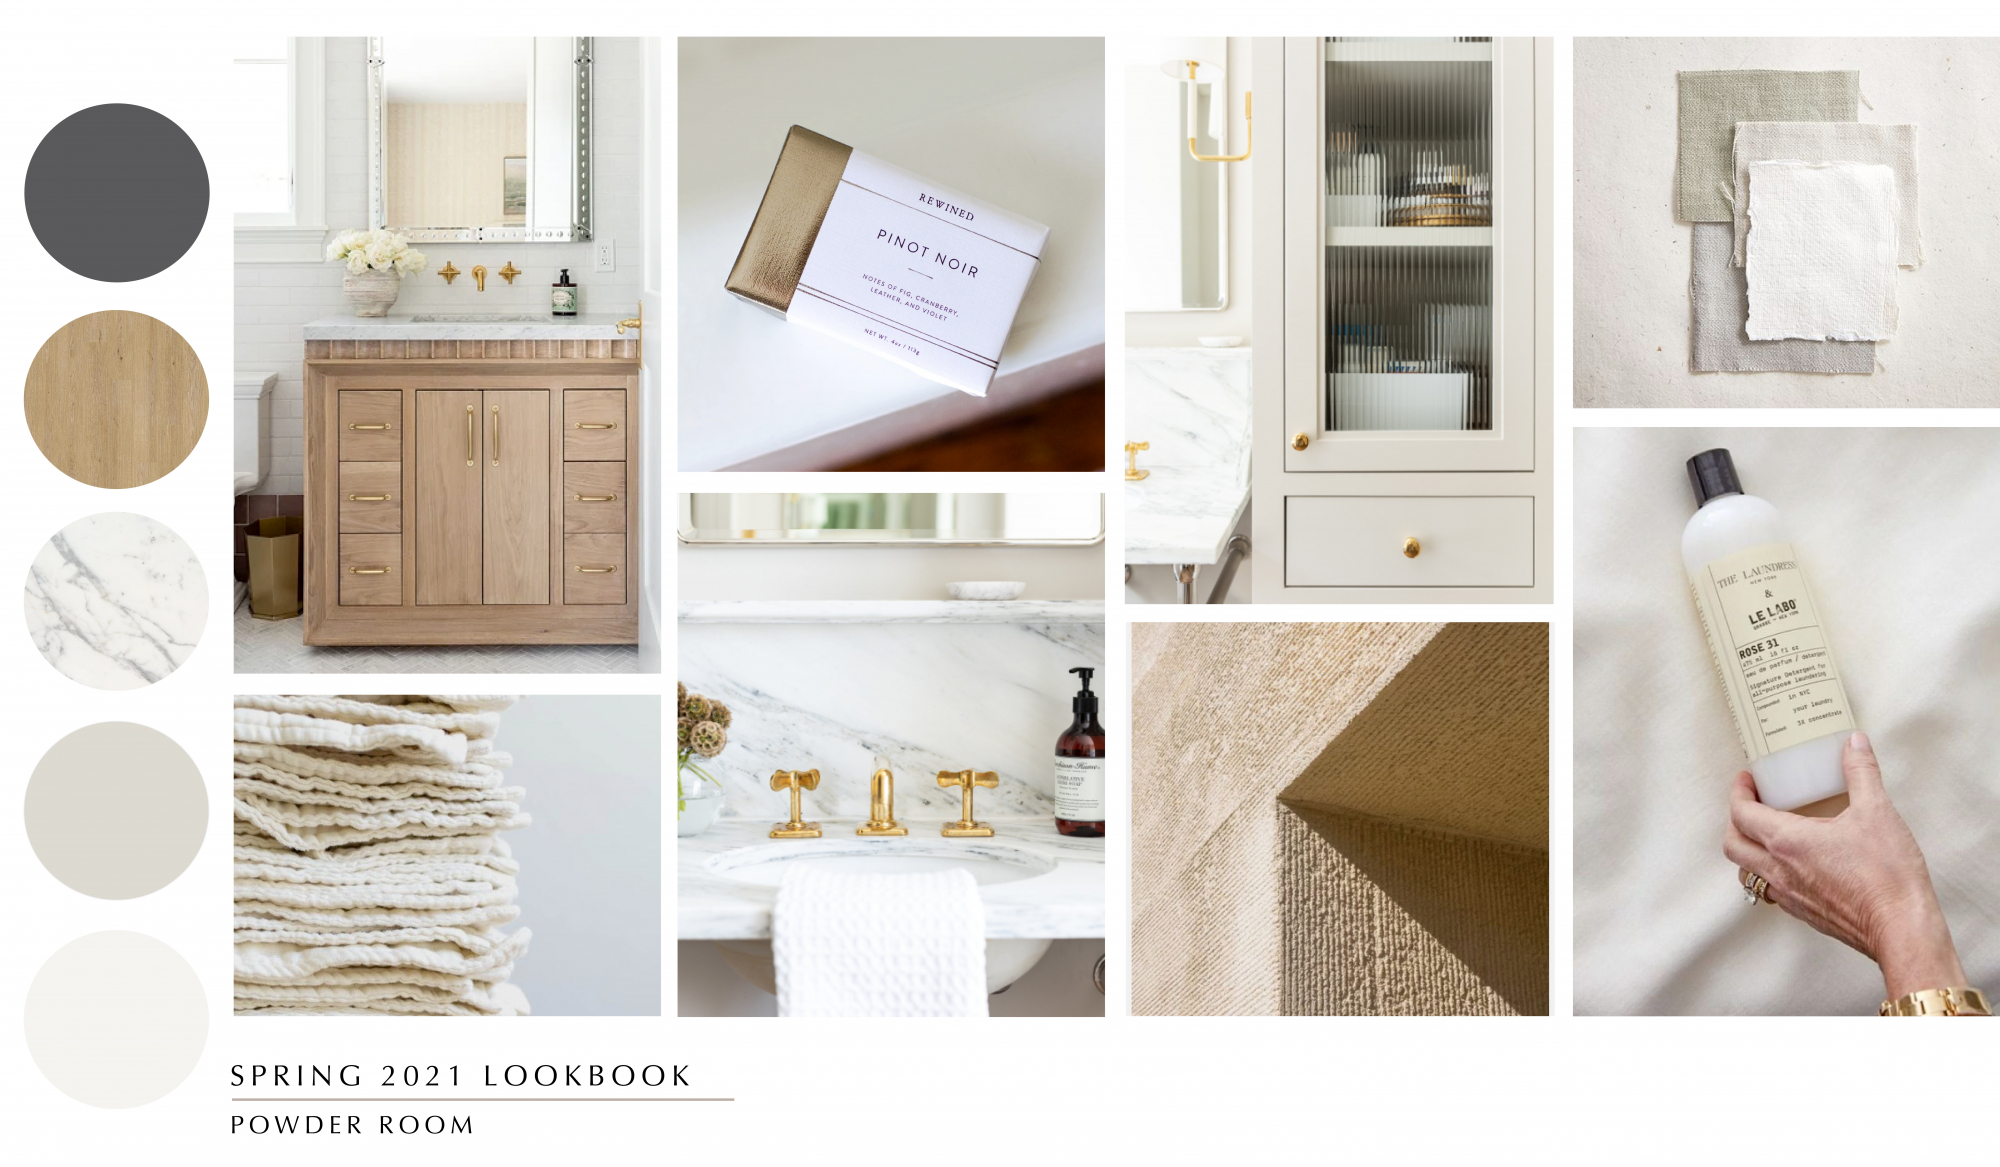 Interior designs with grounding elements such as natural scents and time-worn textures